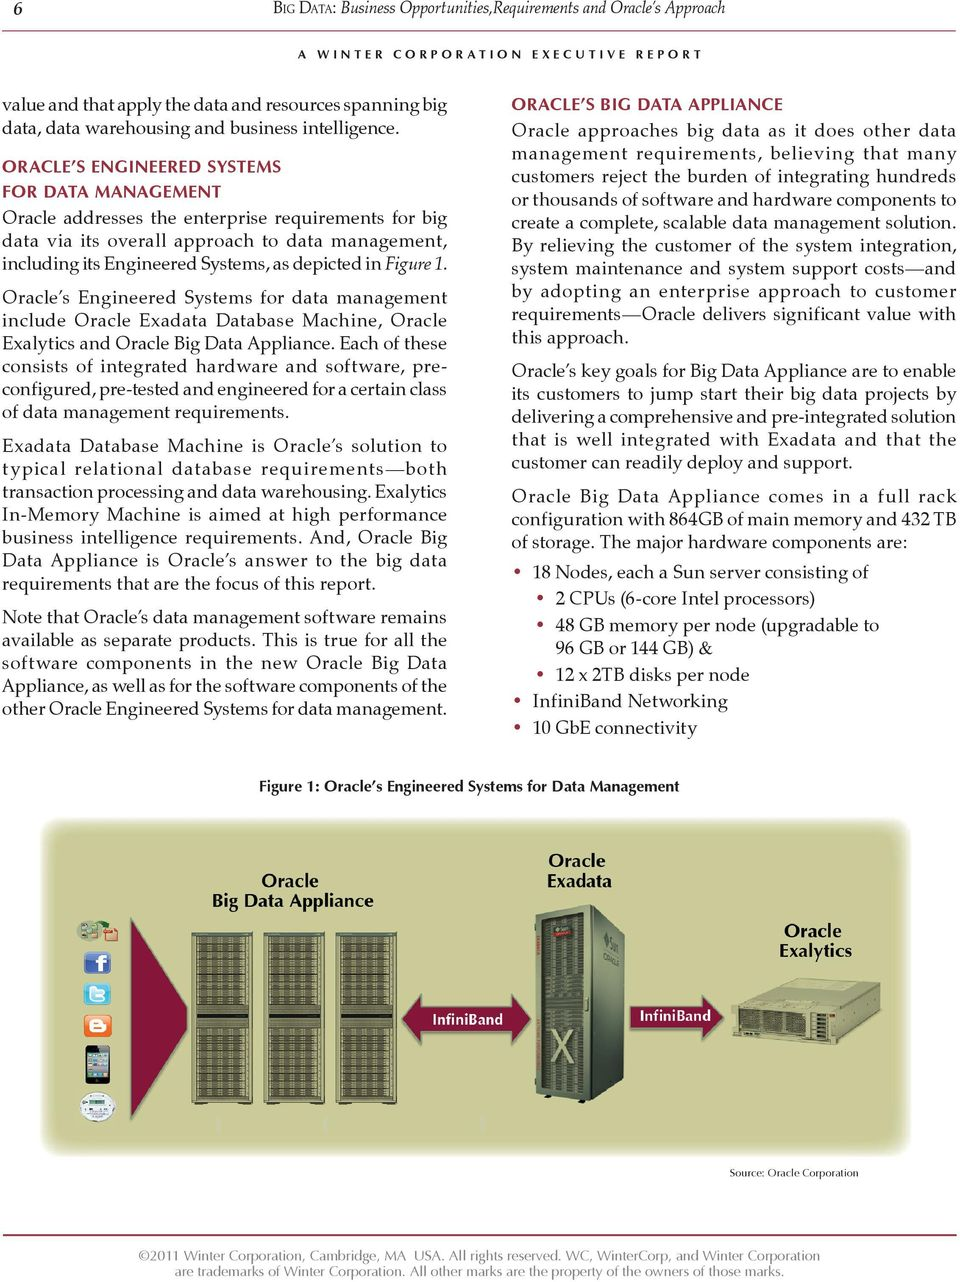 Figure 1. Oracle s Engineered Systems for data management include Oracle Exadata Database Machine, Oracle Exalytics and Oracle Big Data Appliance.